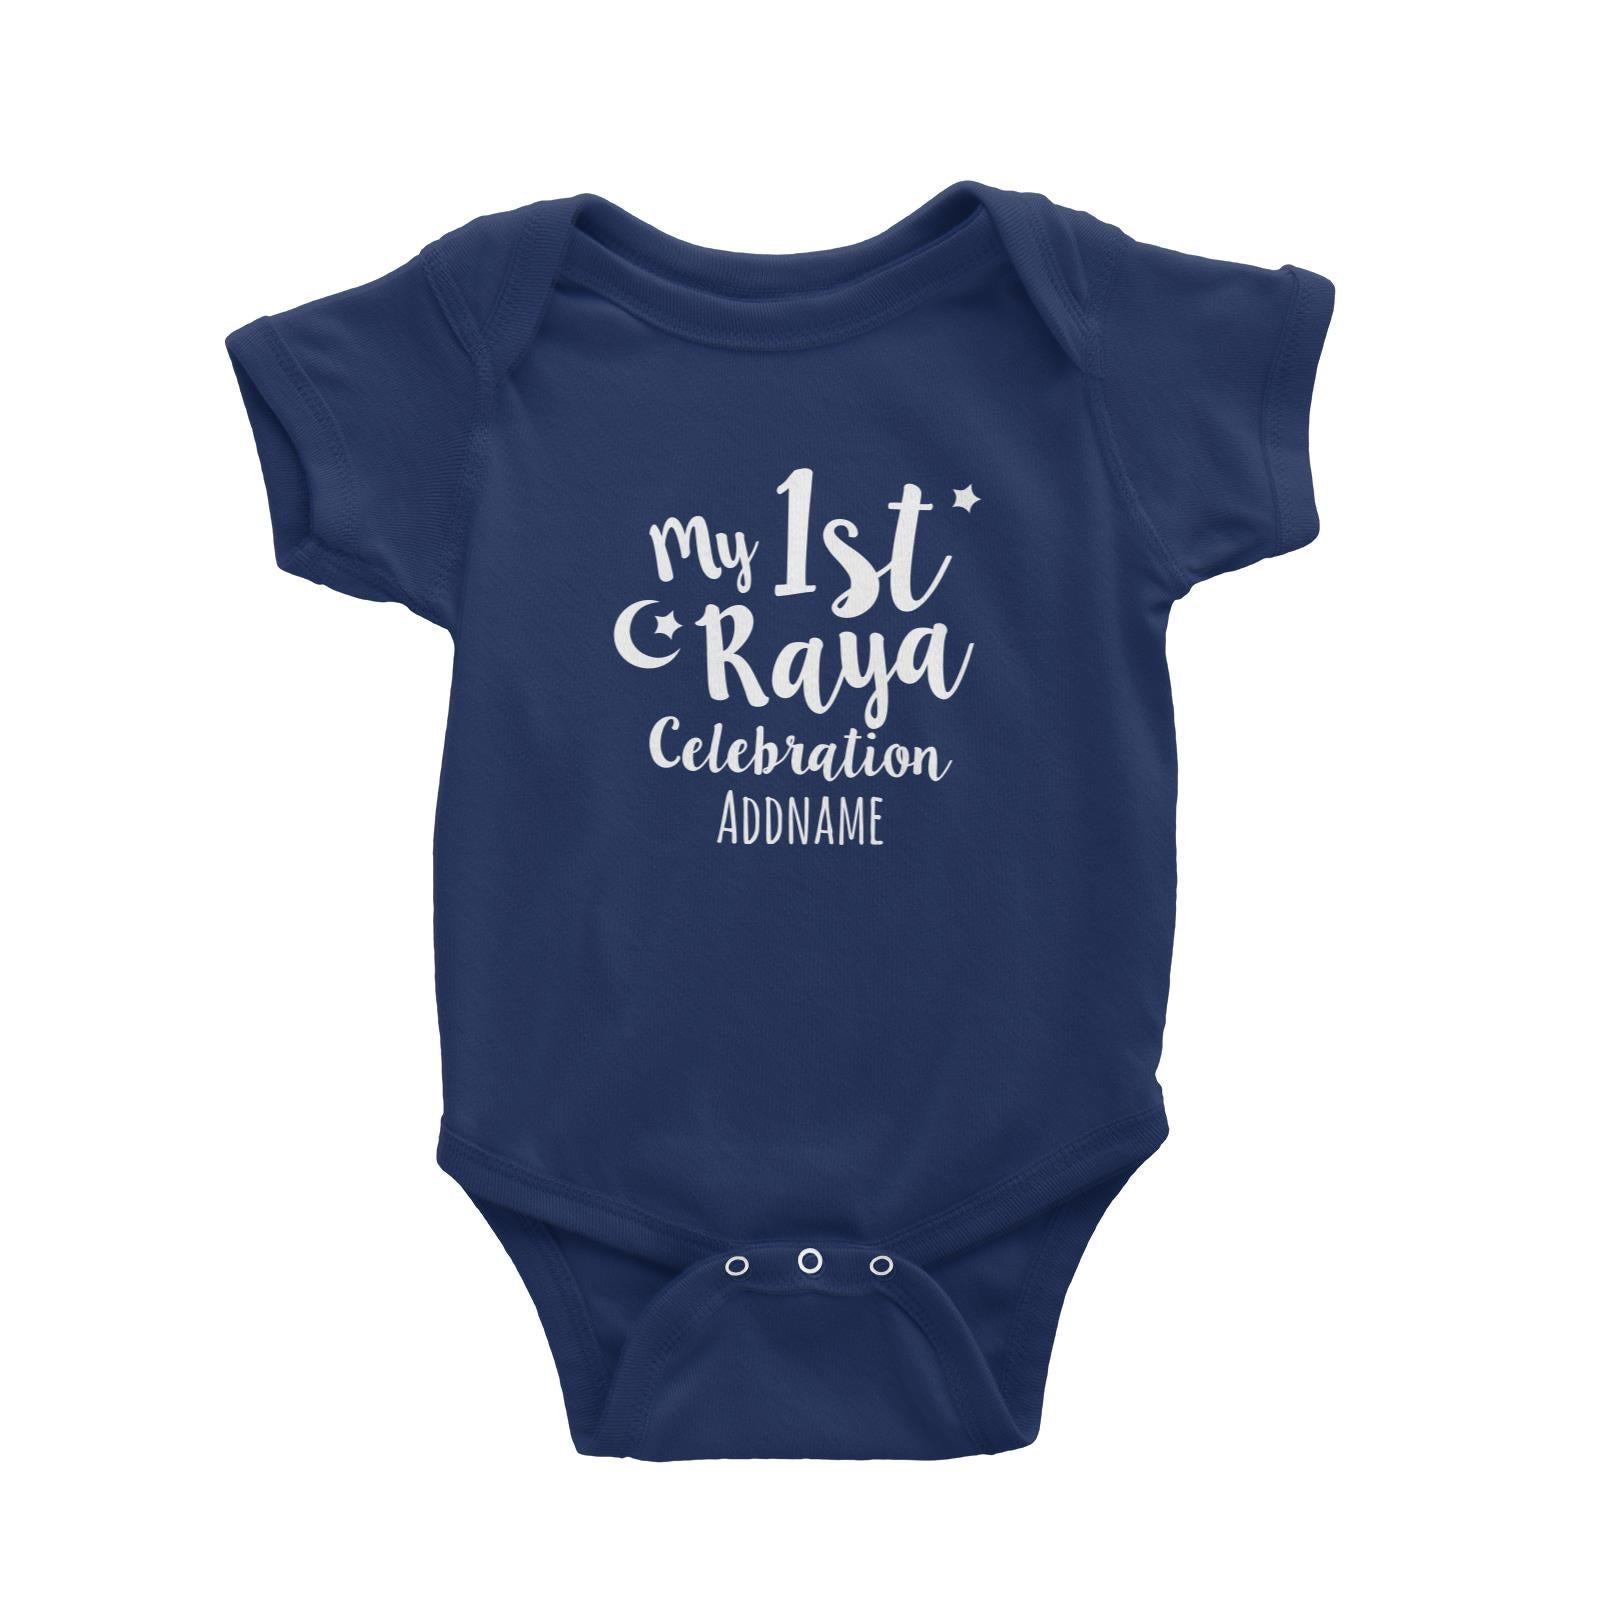 My 1st Raya Celebration Baby Romper  Personalizable Designs Raya Text